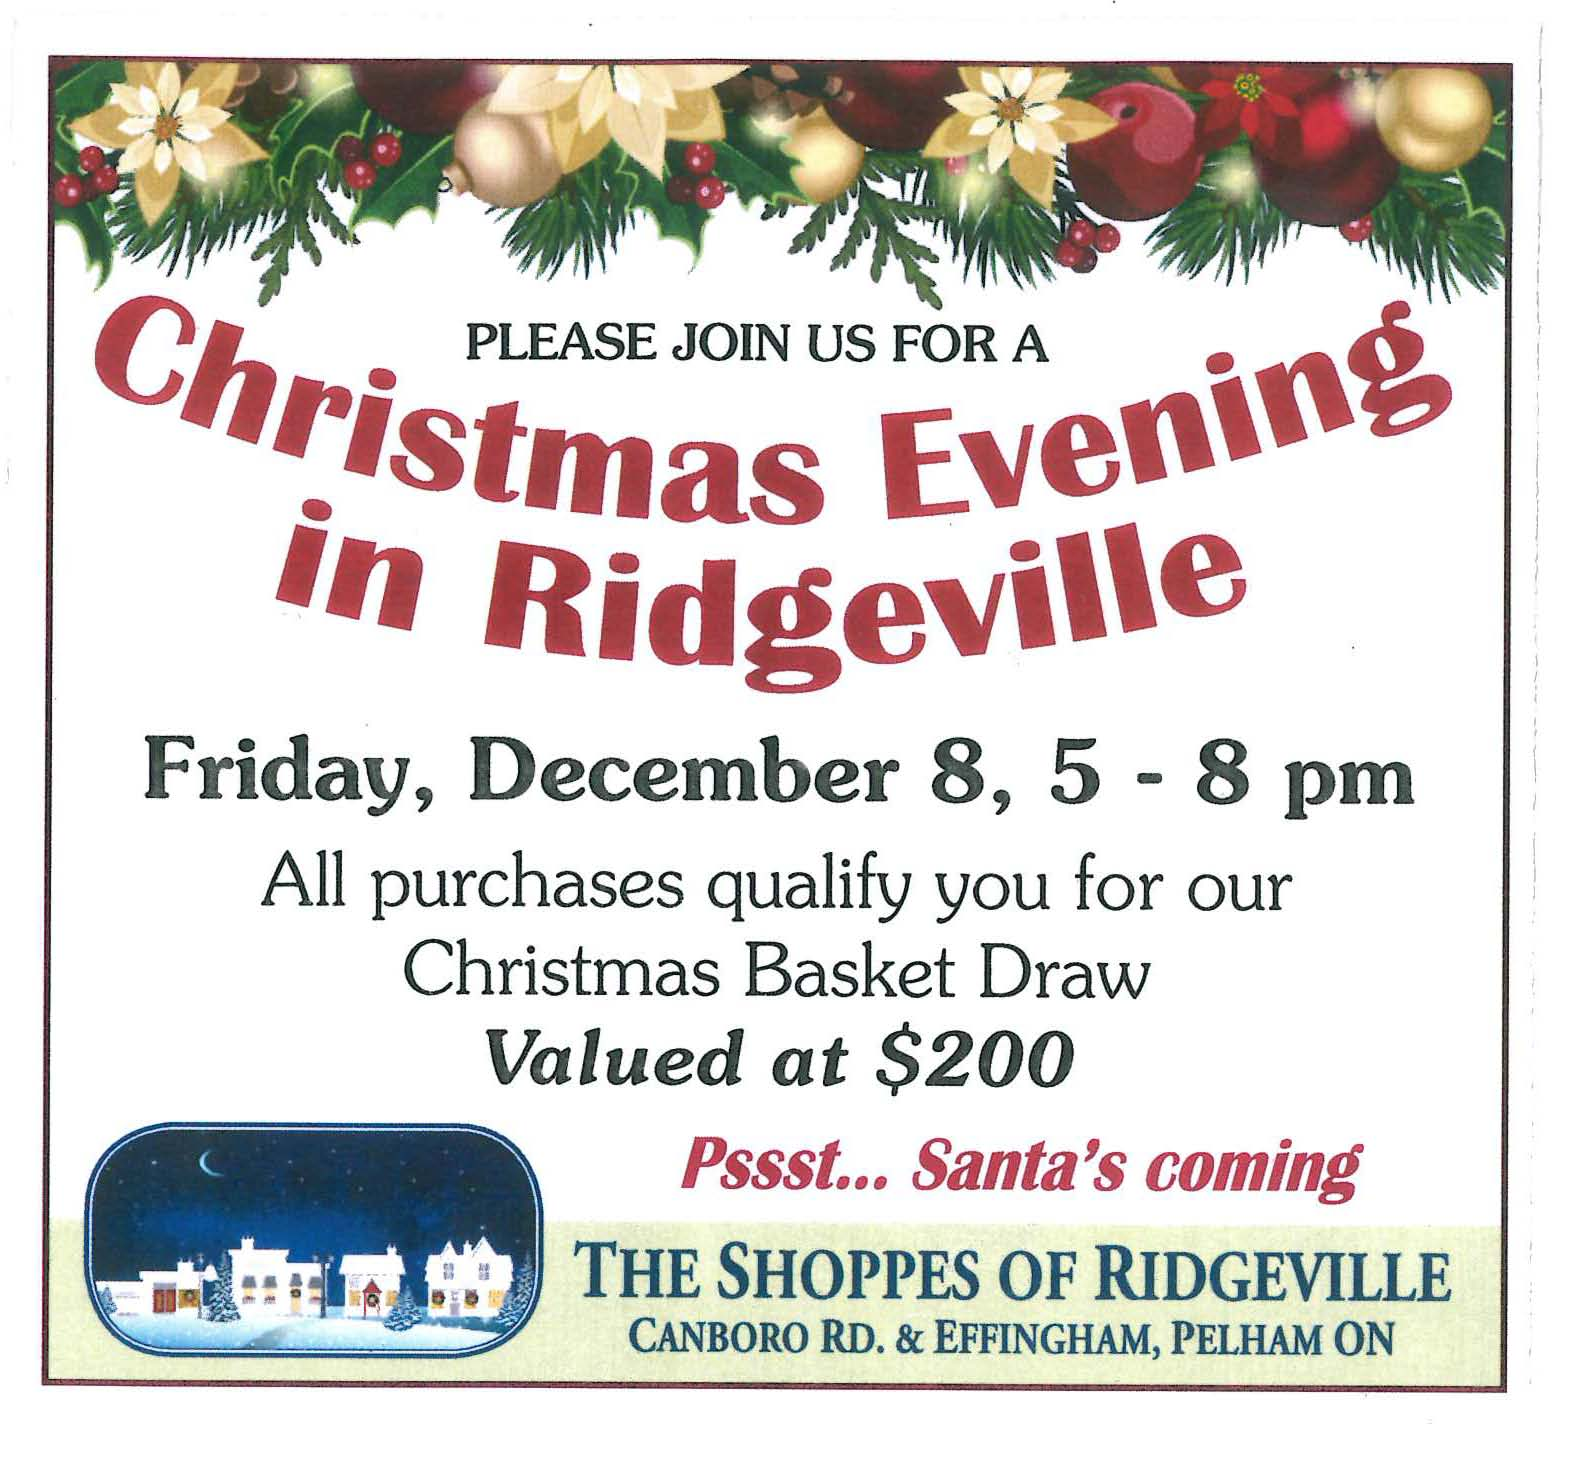 Christmas Evening in Ridgeville